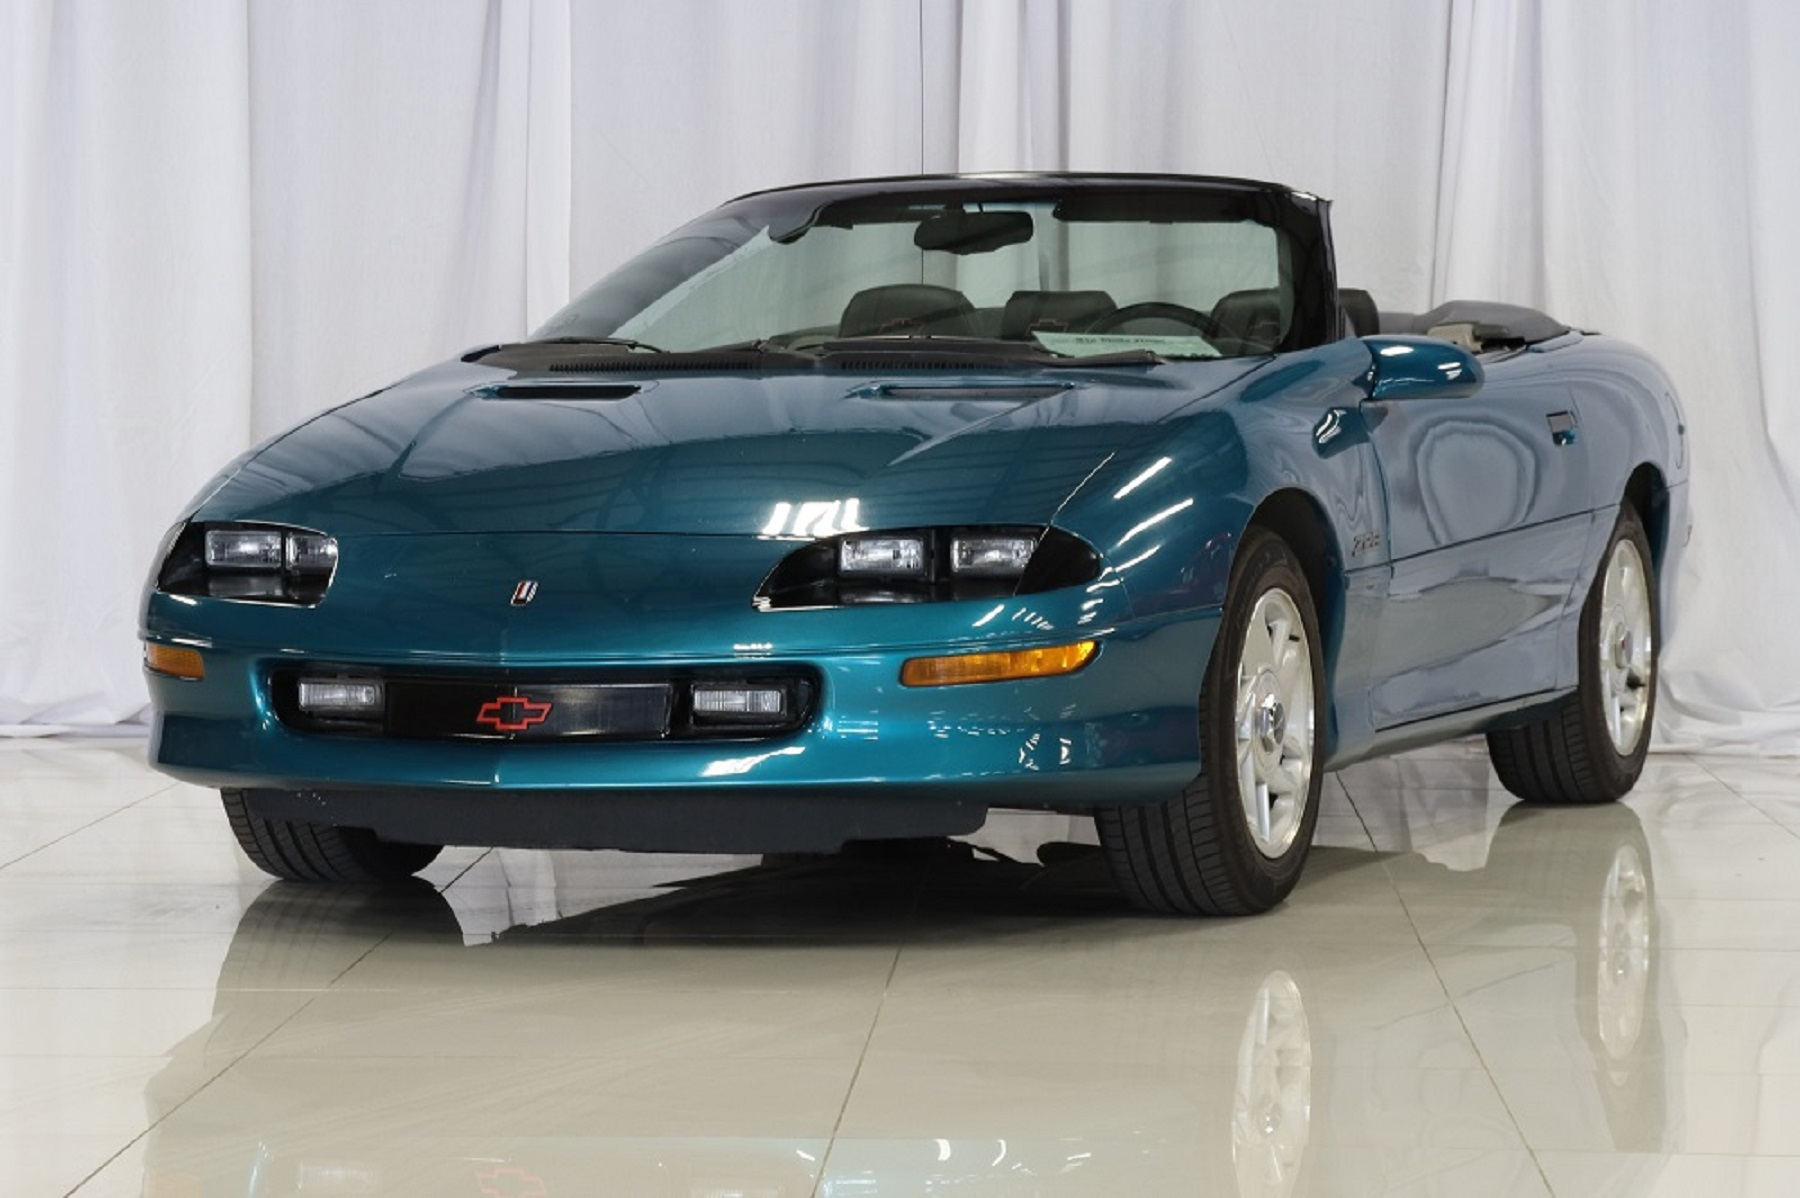 1995 chevrolet camaro z28 convertible creative rides. Black Bedroom Furniture Sets. Home Design Ideas